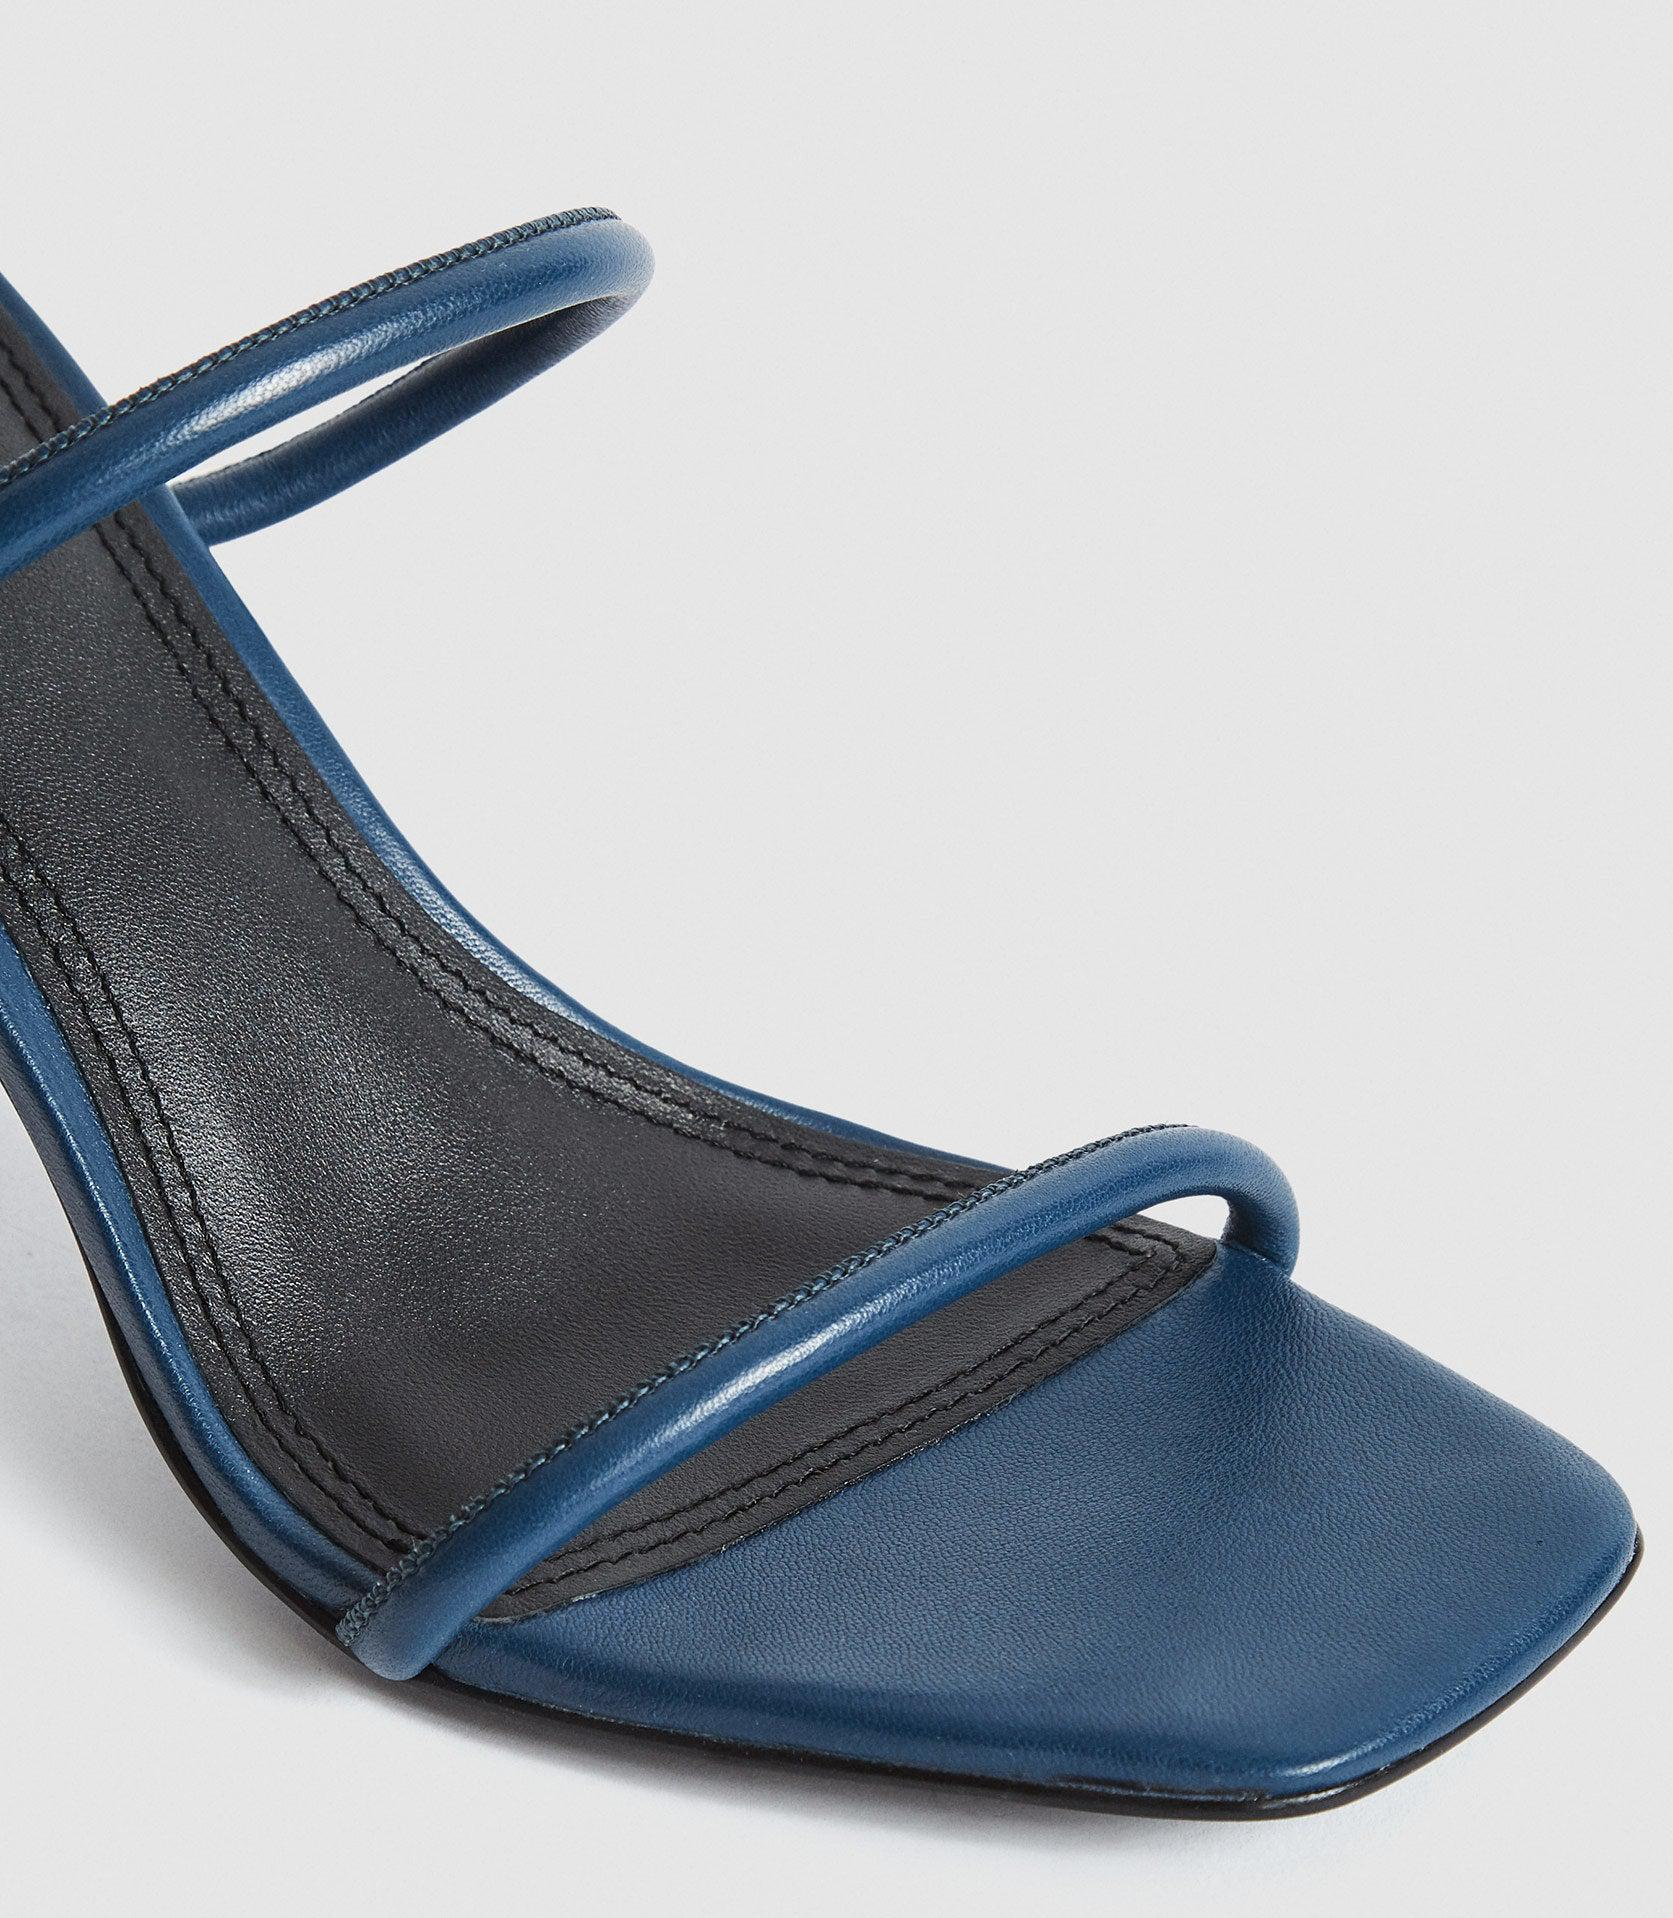 MAGDA - LEATHER STRAPPY HEELED SANDALS 4